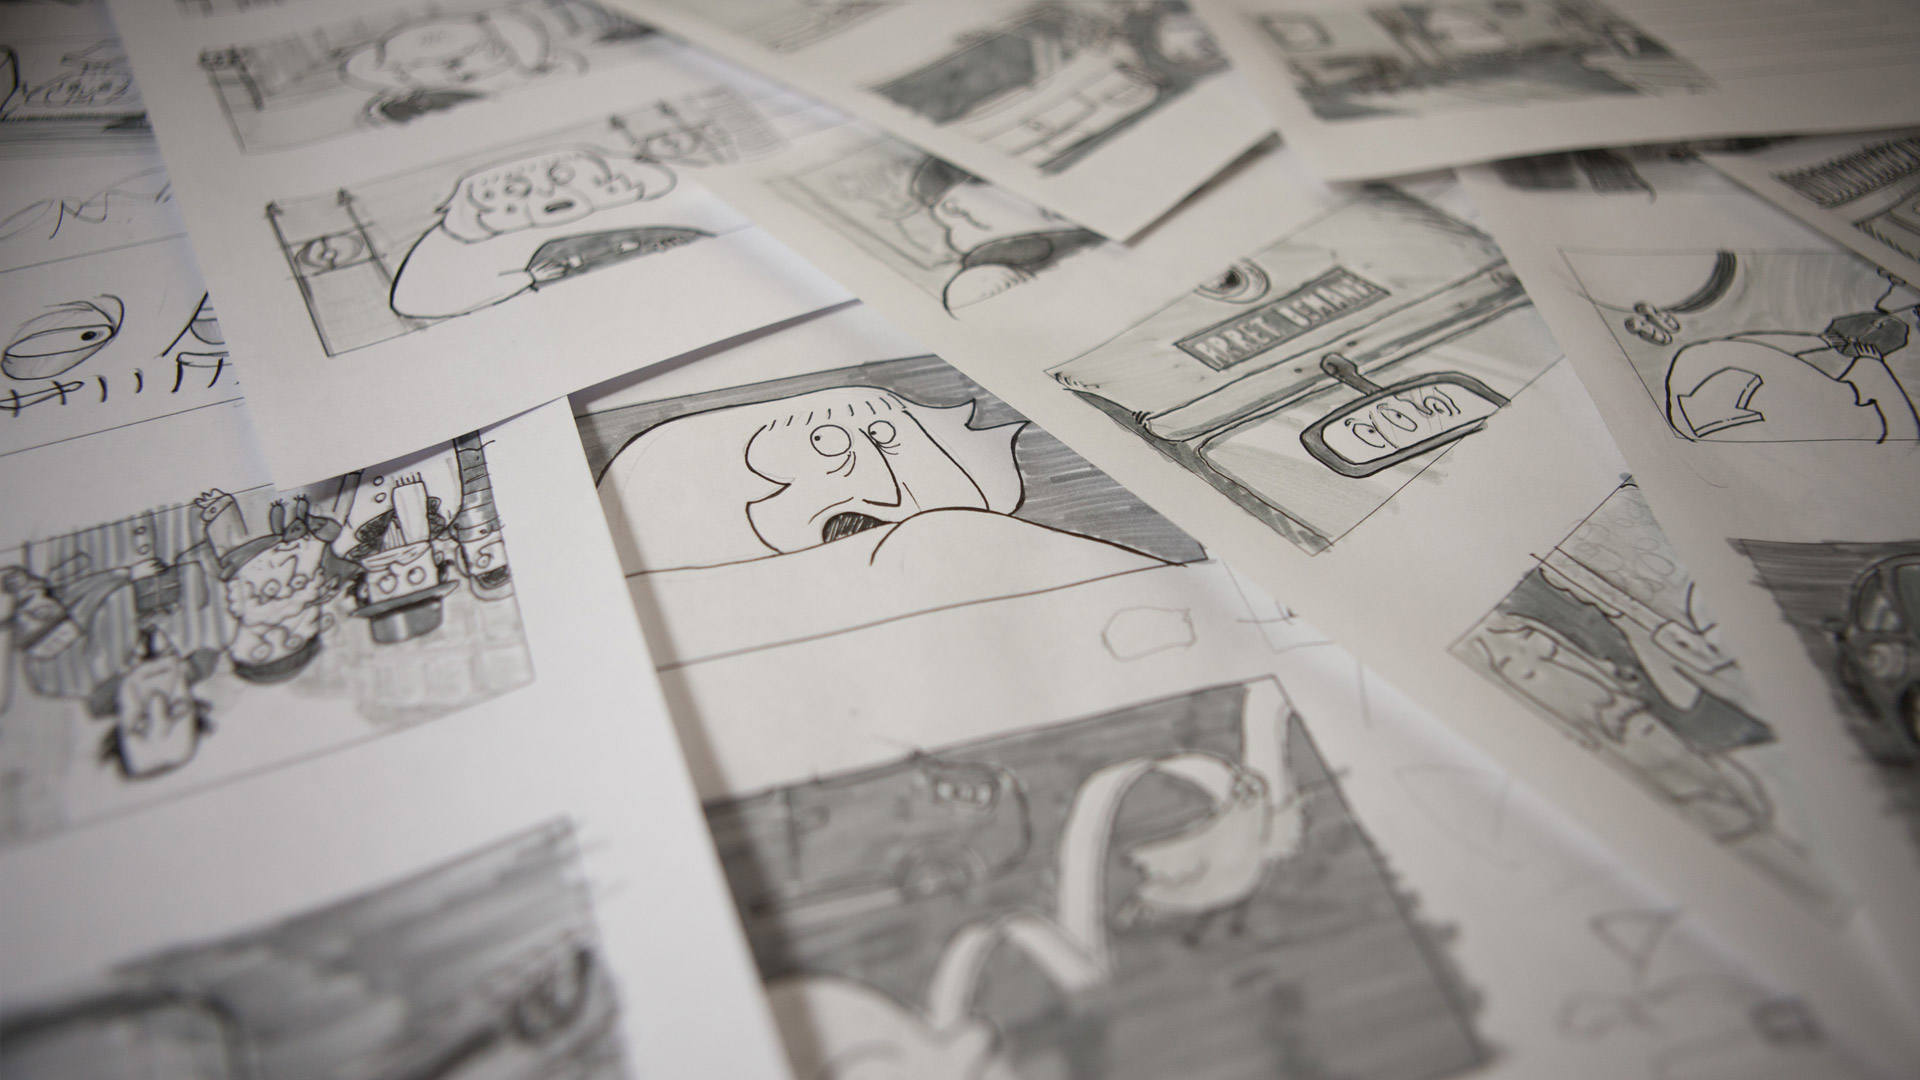 Pages from the storyboard.